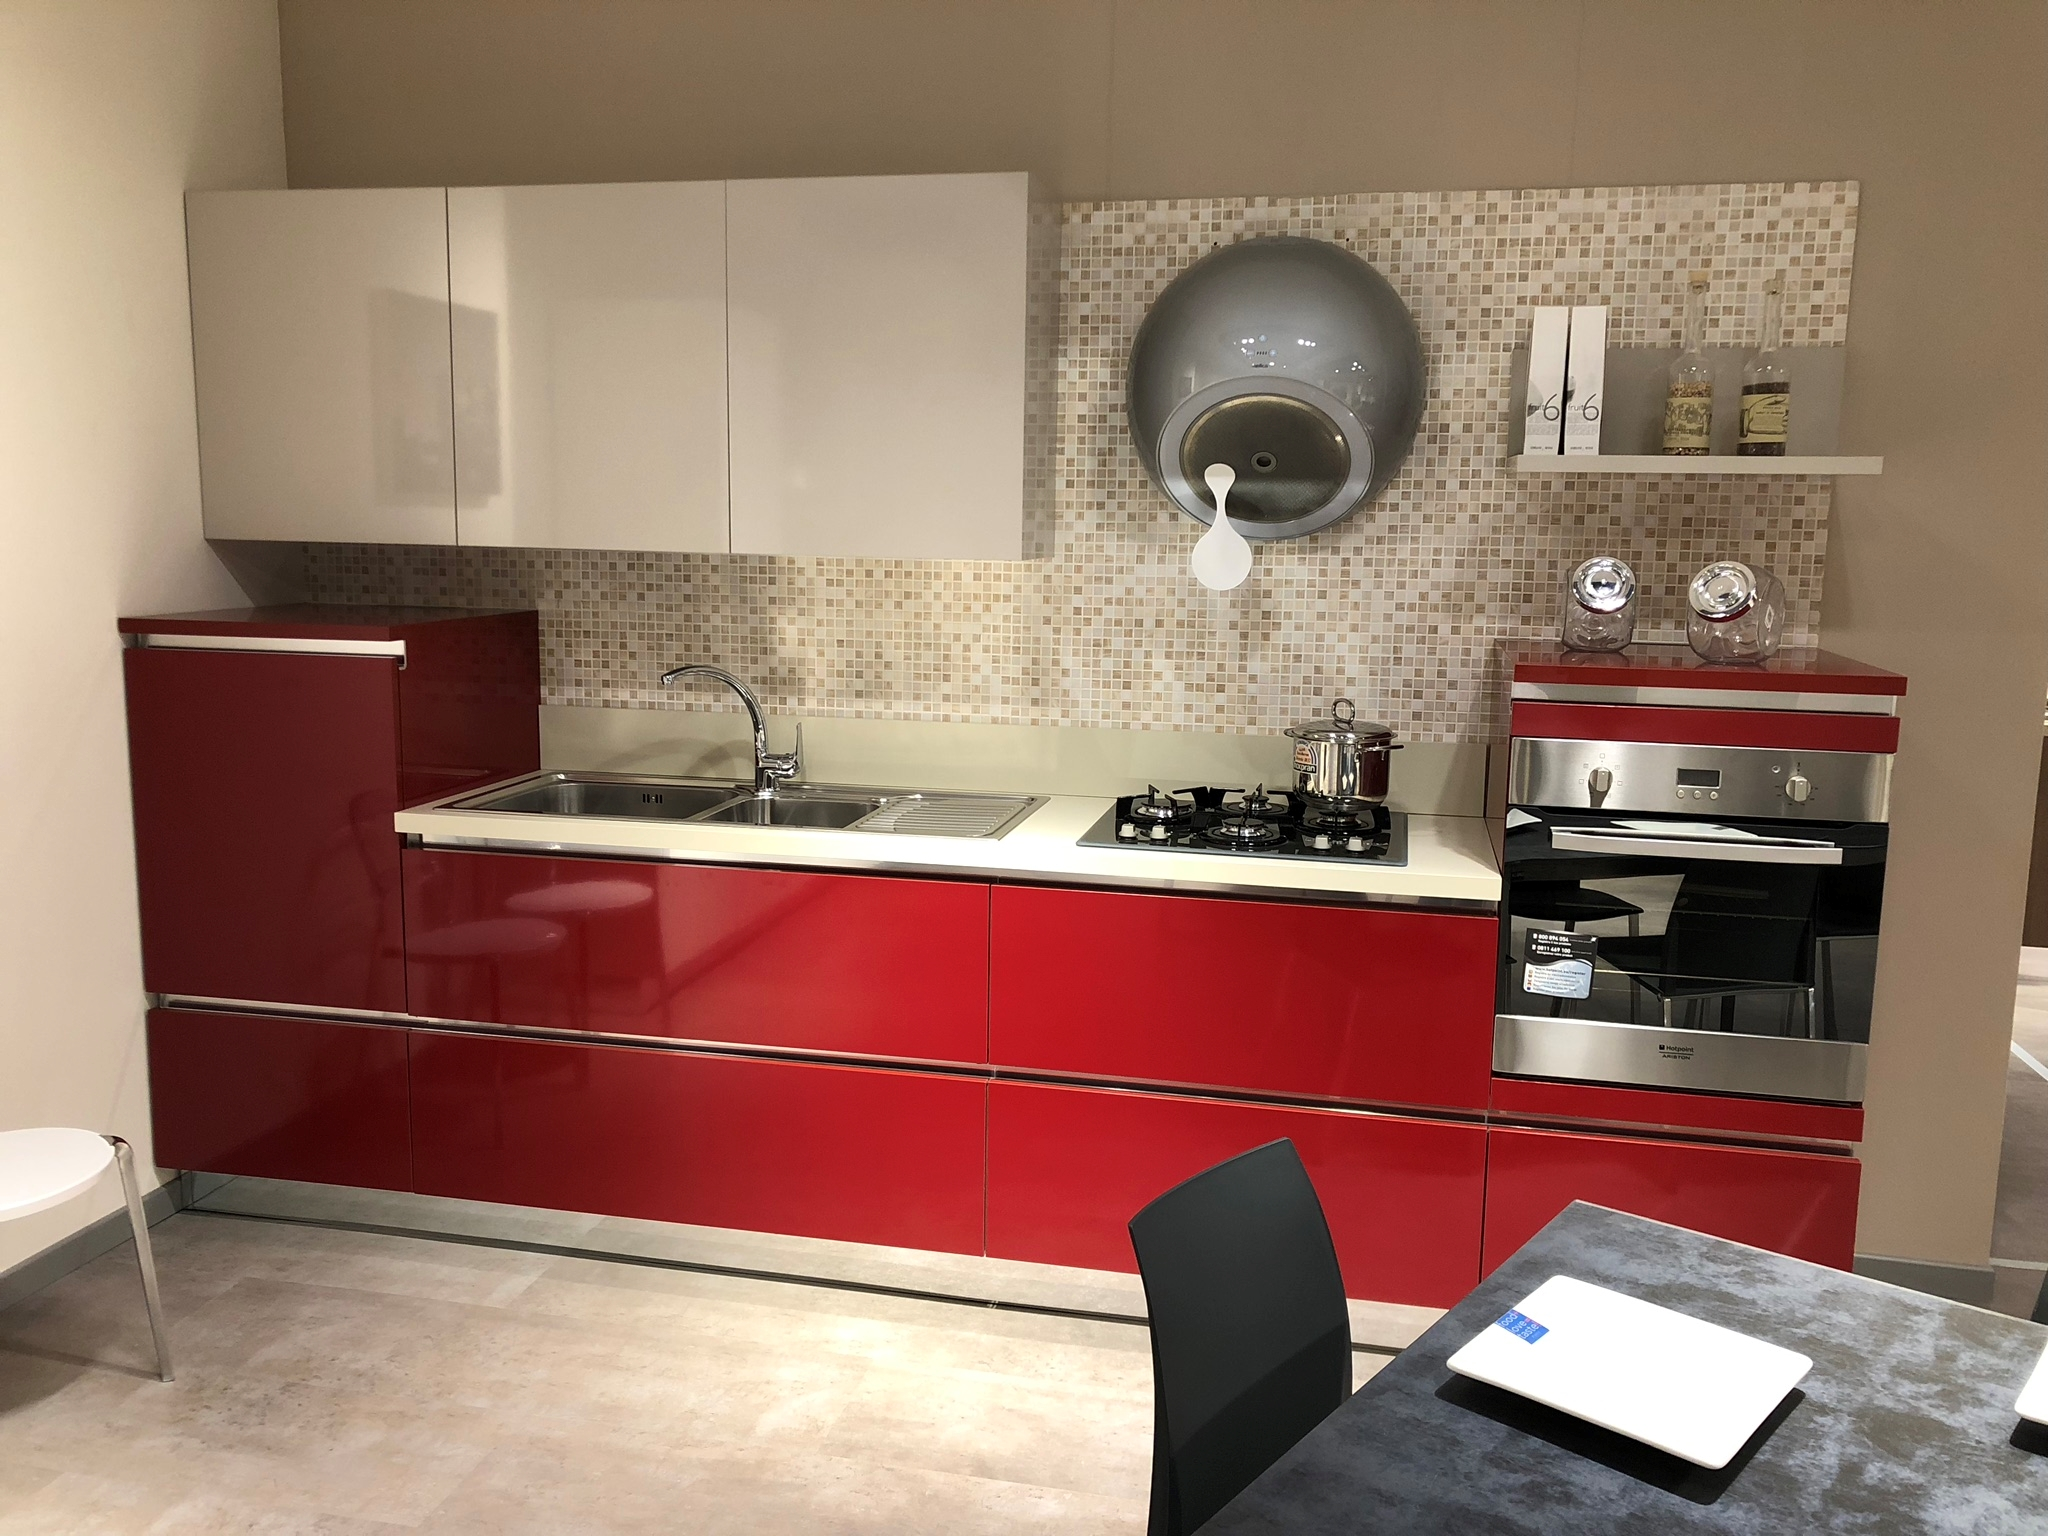 Piastrelle cucina rosse stunning with piastrelle cucina rosse trendy oltre with piastrelle - Piastrelle cucina rosse ...